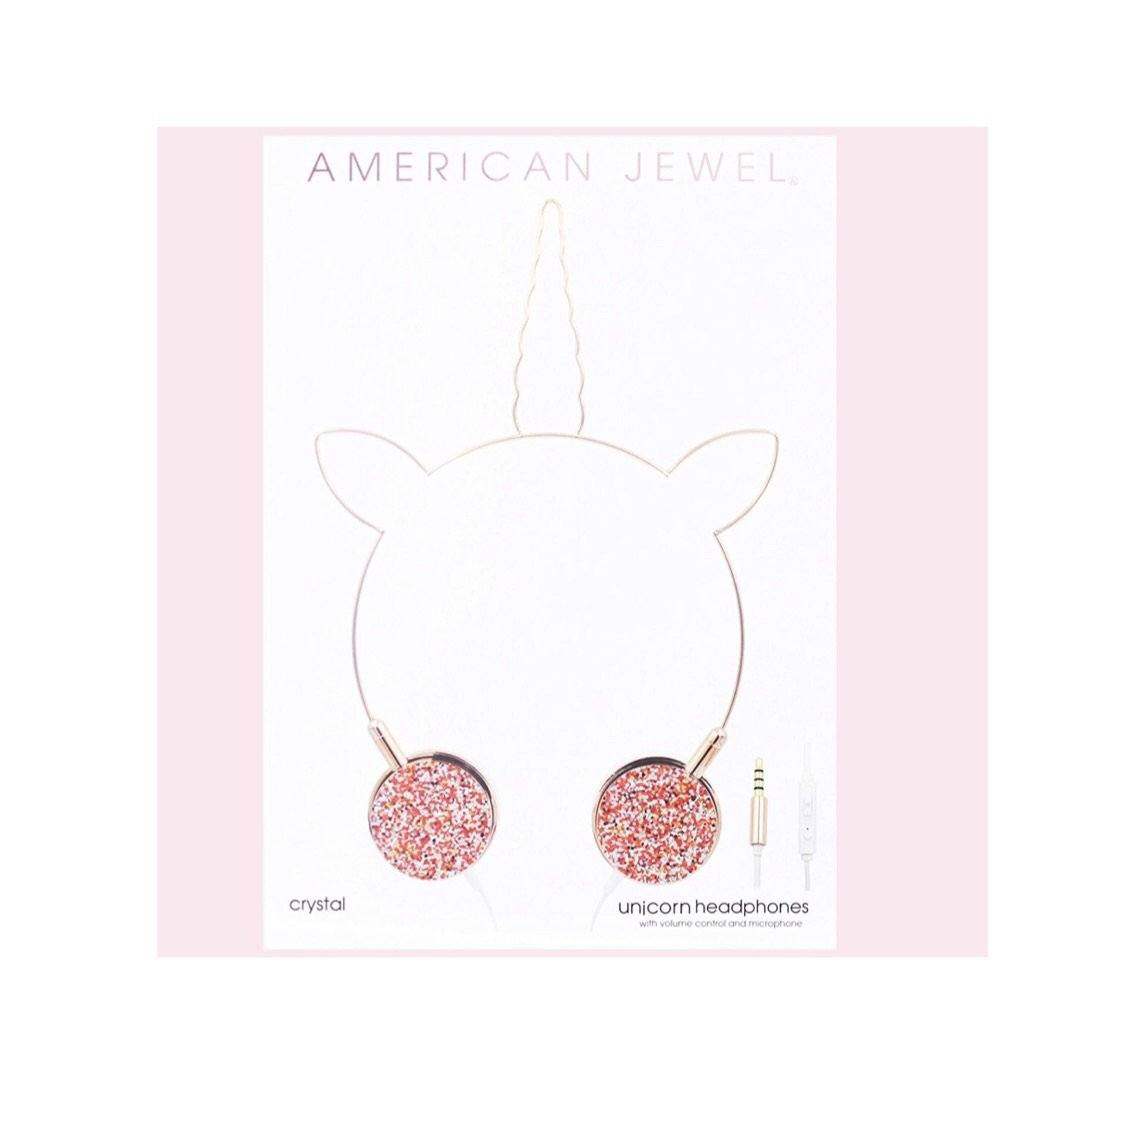 American Jewel - Rose Gold Unicorn Headphones Headphones American Jewel